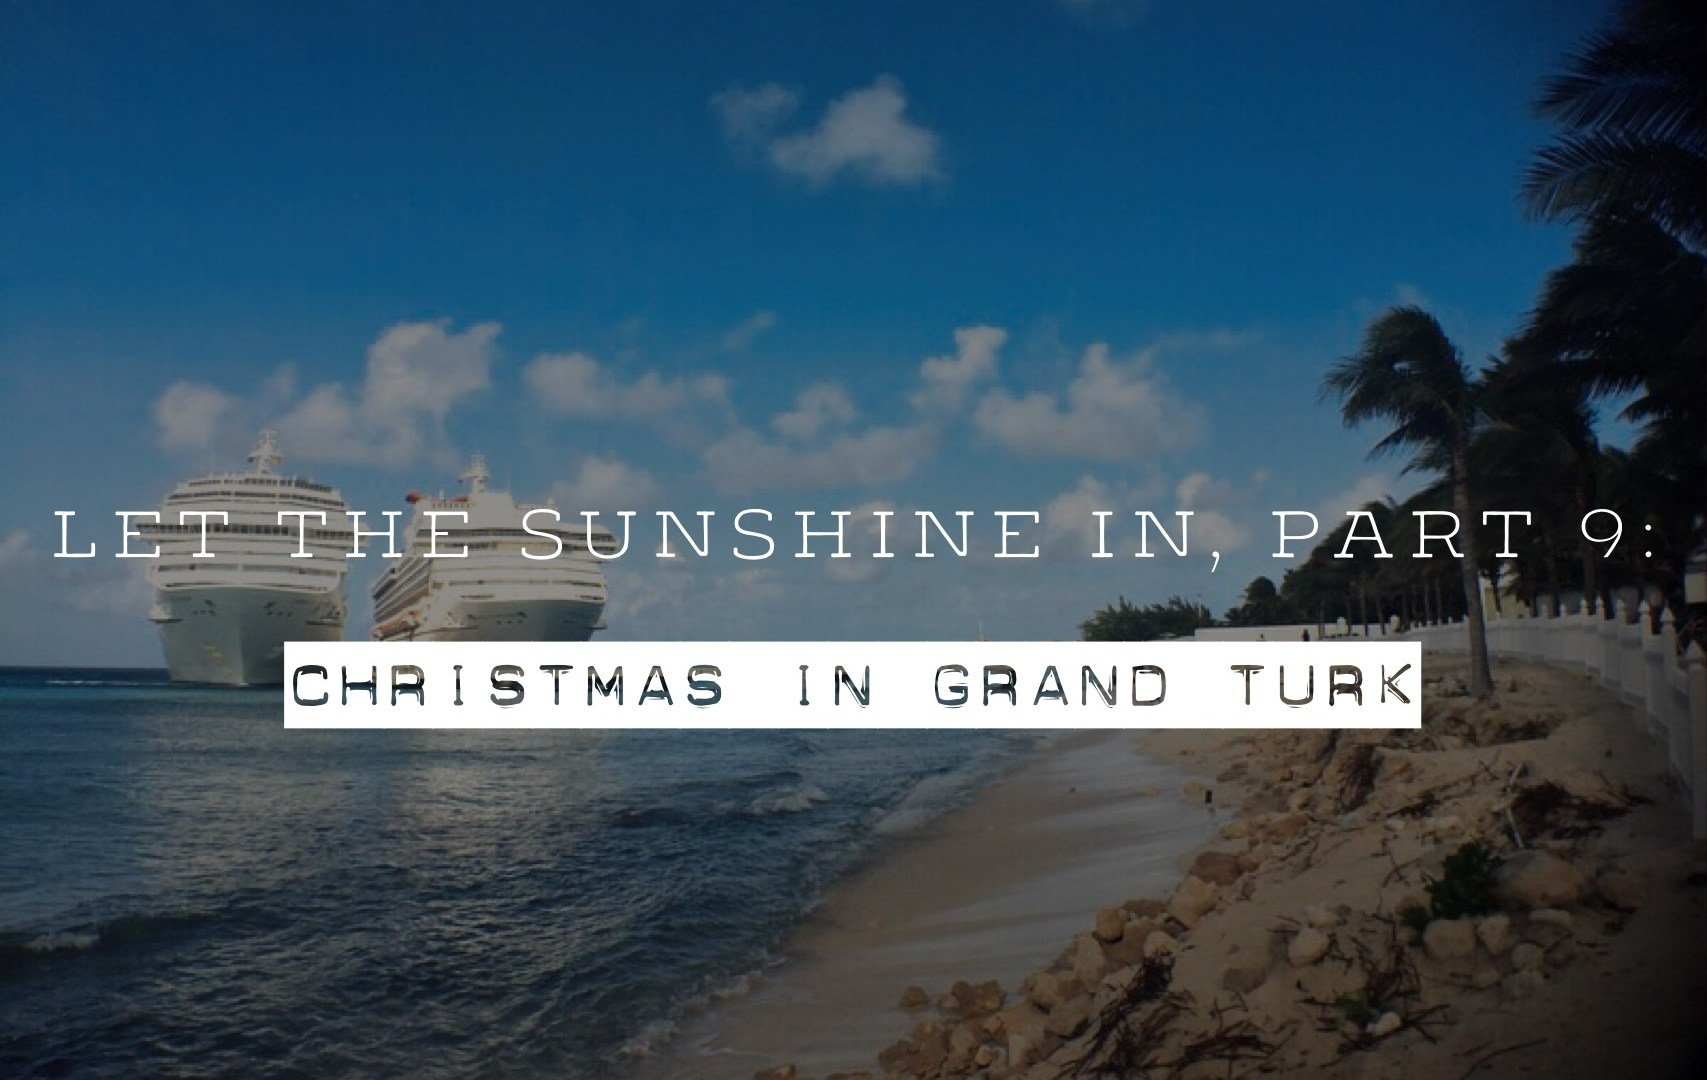 Carnival Sunshine Review, Part 9: Christmas in Grand Turk